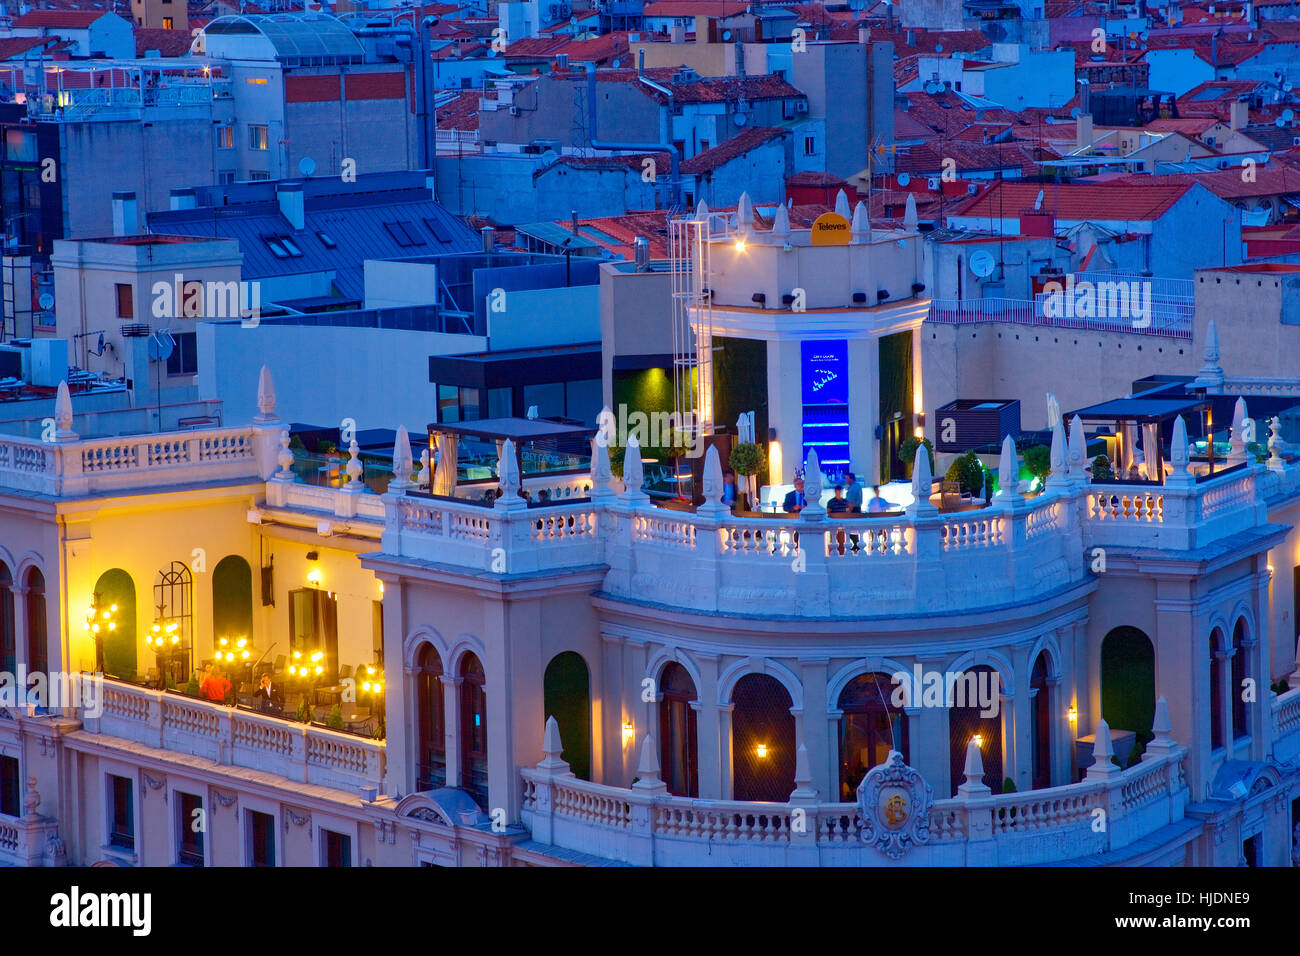 Nightlife in Madrid - Stock Image